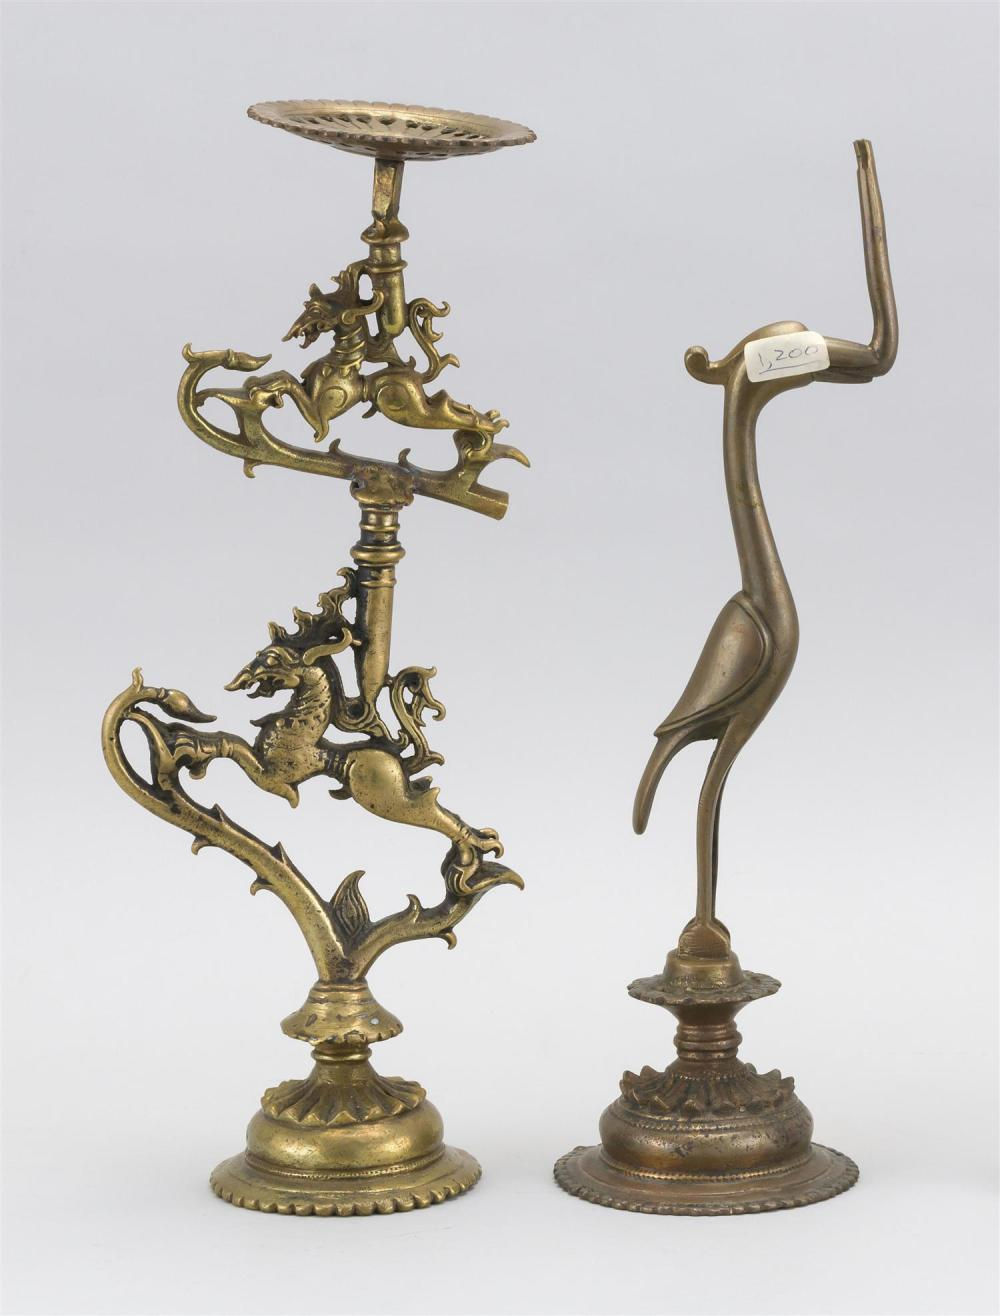 TWO PIECES OF INDIAN METALWARE A bronze altar stand in a horse-like creature design, height 13